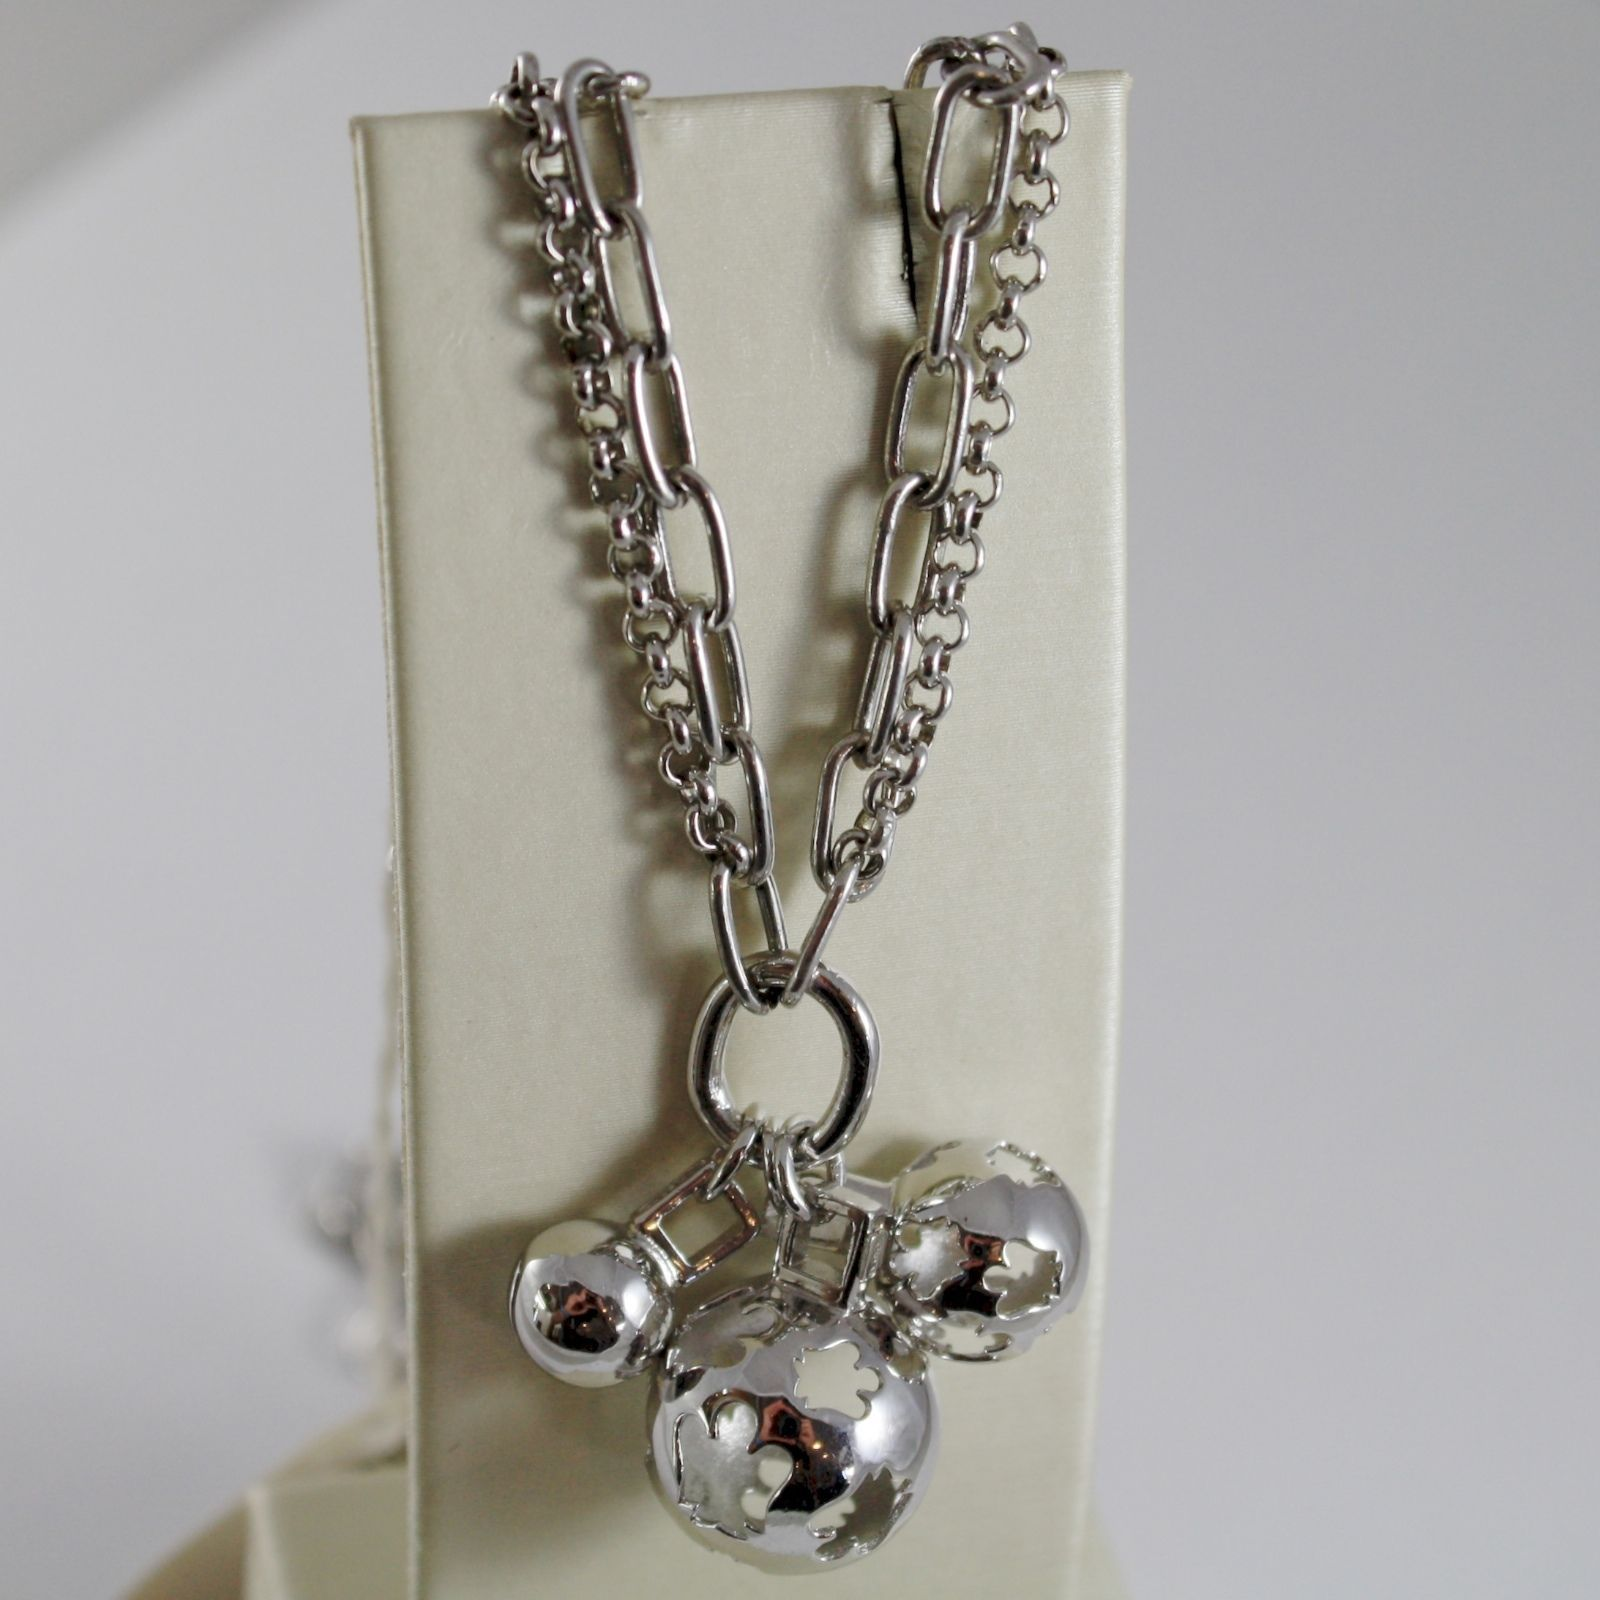 ROBERTO GIANNOTTI 925 SILVER NECKLACE 3 HARMONY BALLS ANGEL CALLER DOUBLE CHAIN